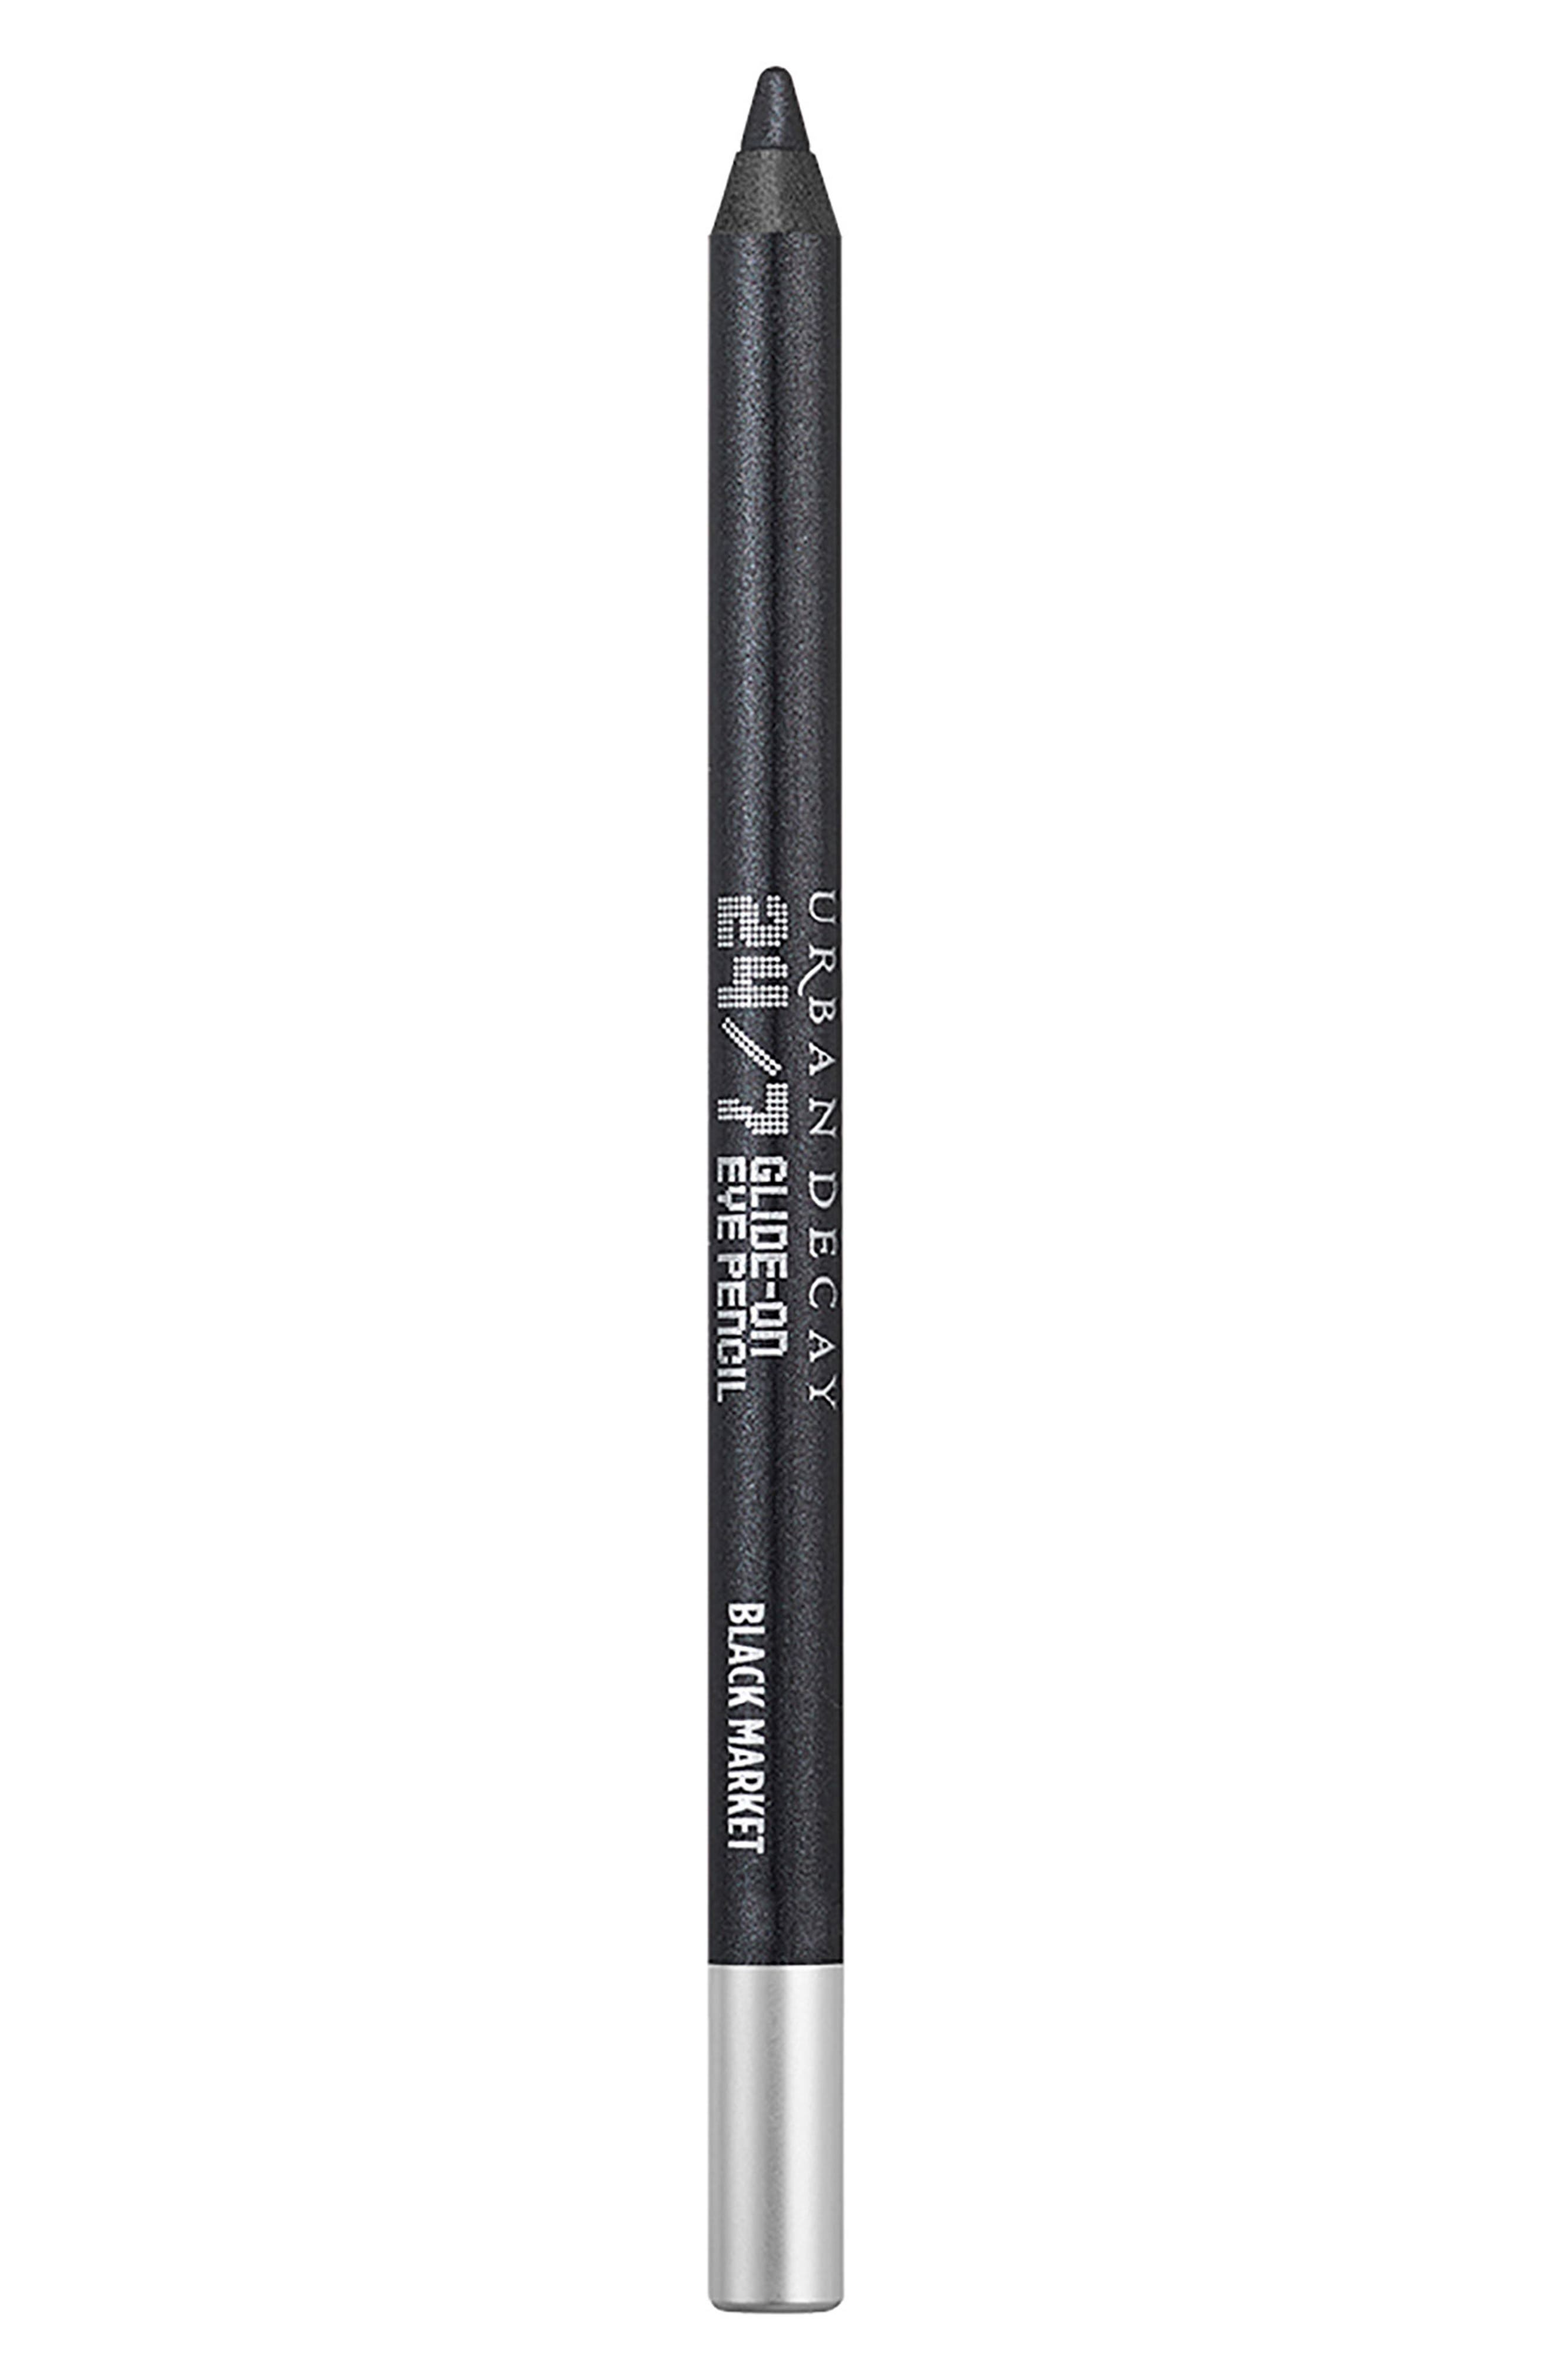 Naked Cherry 24/7 Glide-On Eye Pencil,                             Main thumbnail 1, color,                             NIGHT MARKET